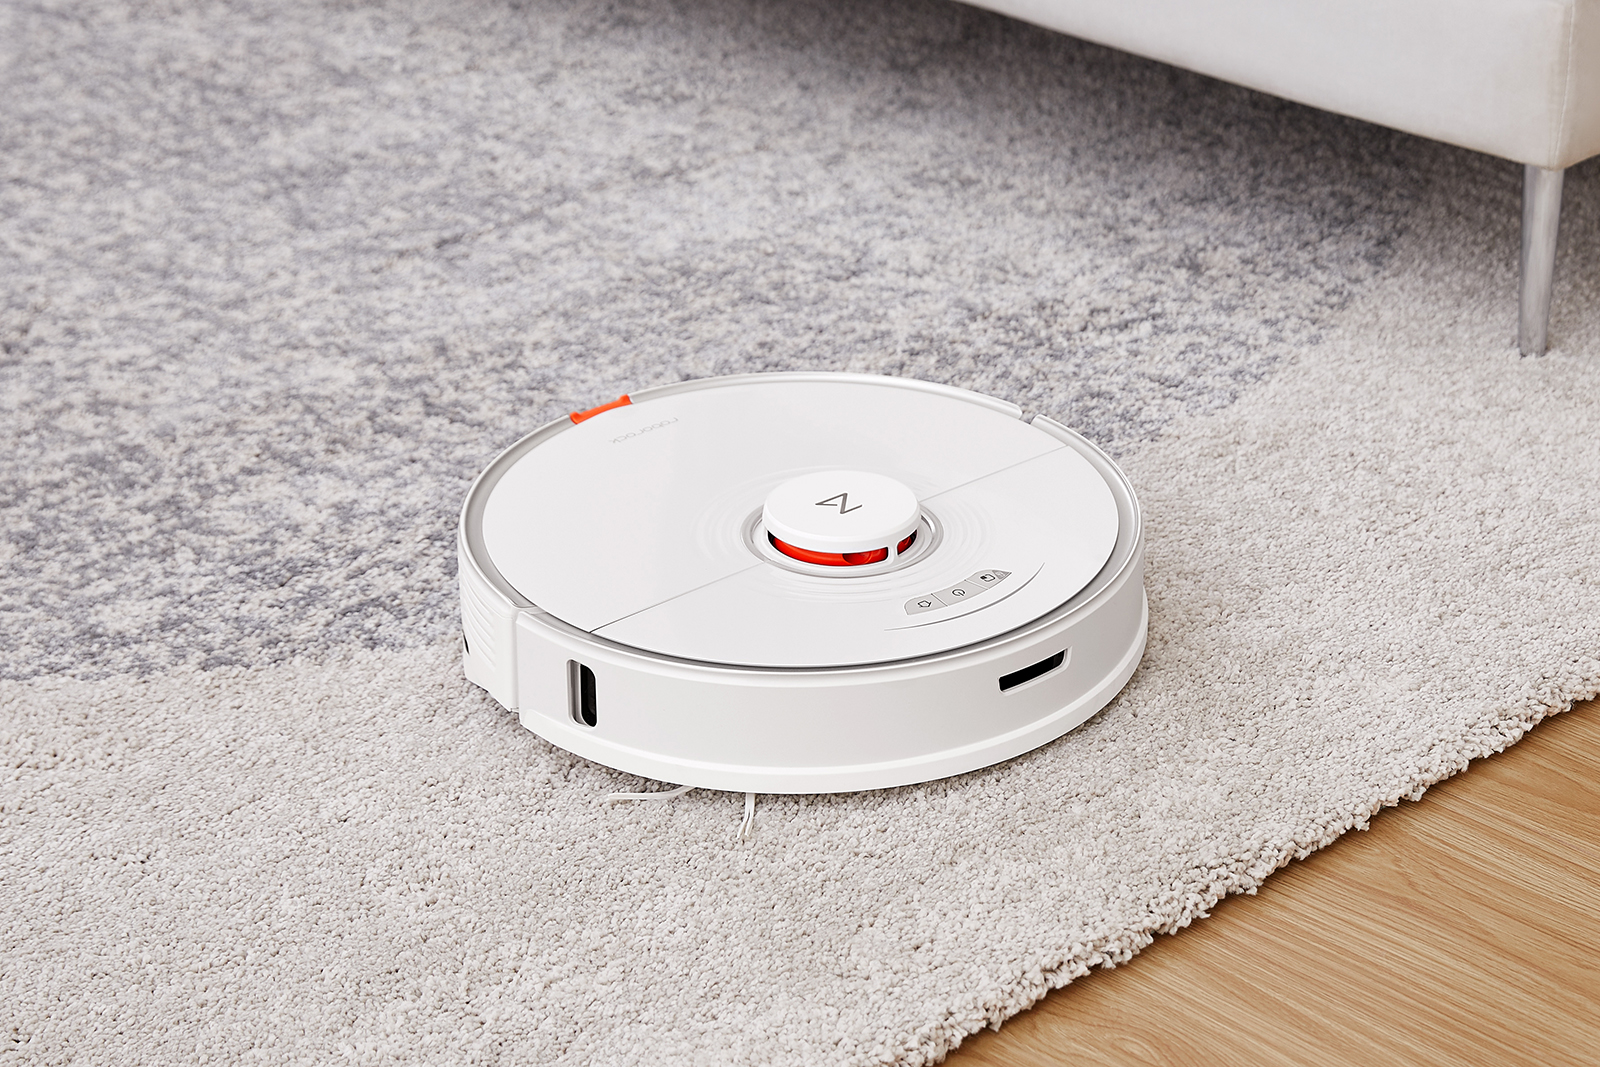 The Roborock S7 is equally happy vacuuming carpets or mopping tiled floors